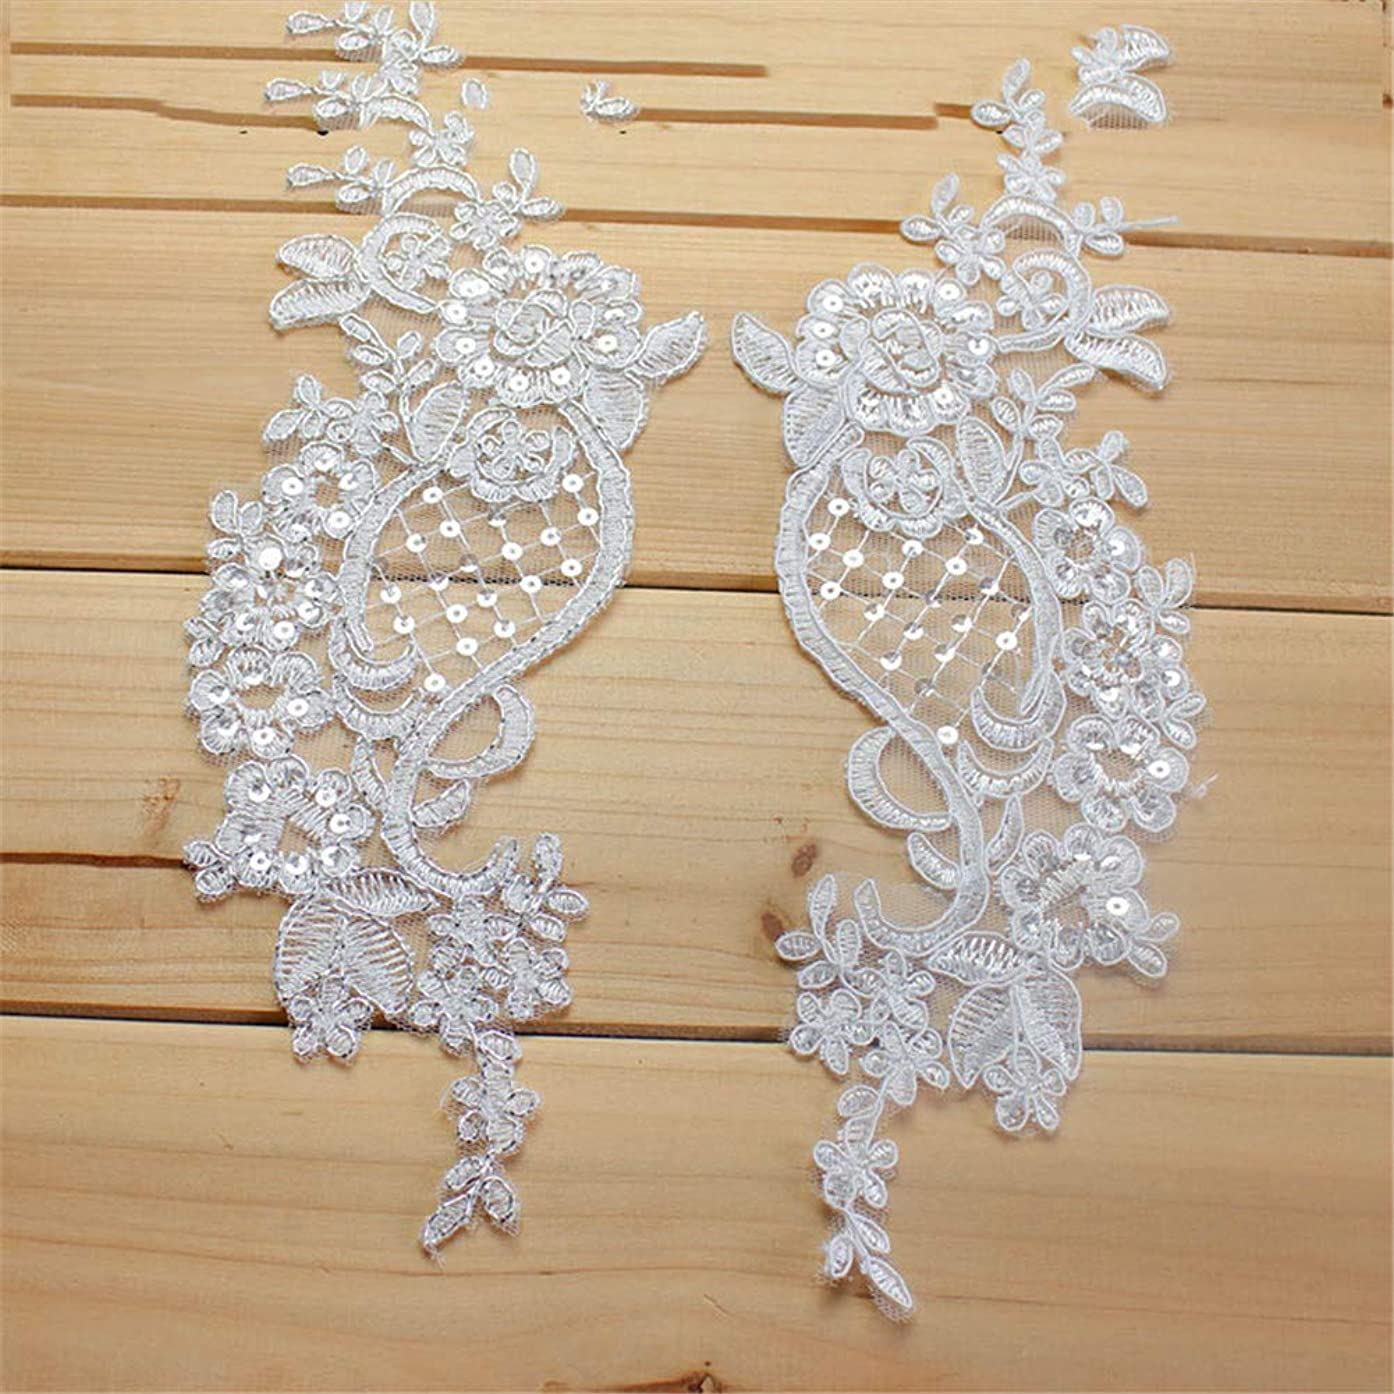 Sewing on Lace Applique-2 Piece Sequin Lace Applique Beaded Lace Patches Trim for DIY Bridal Wedding Dress Bridal Headdress